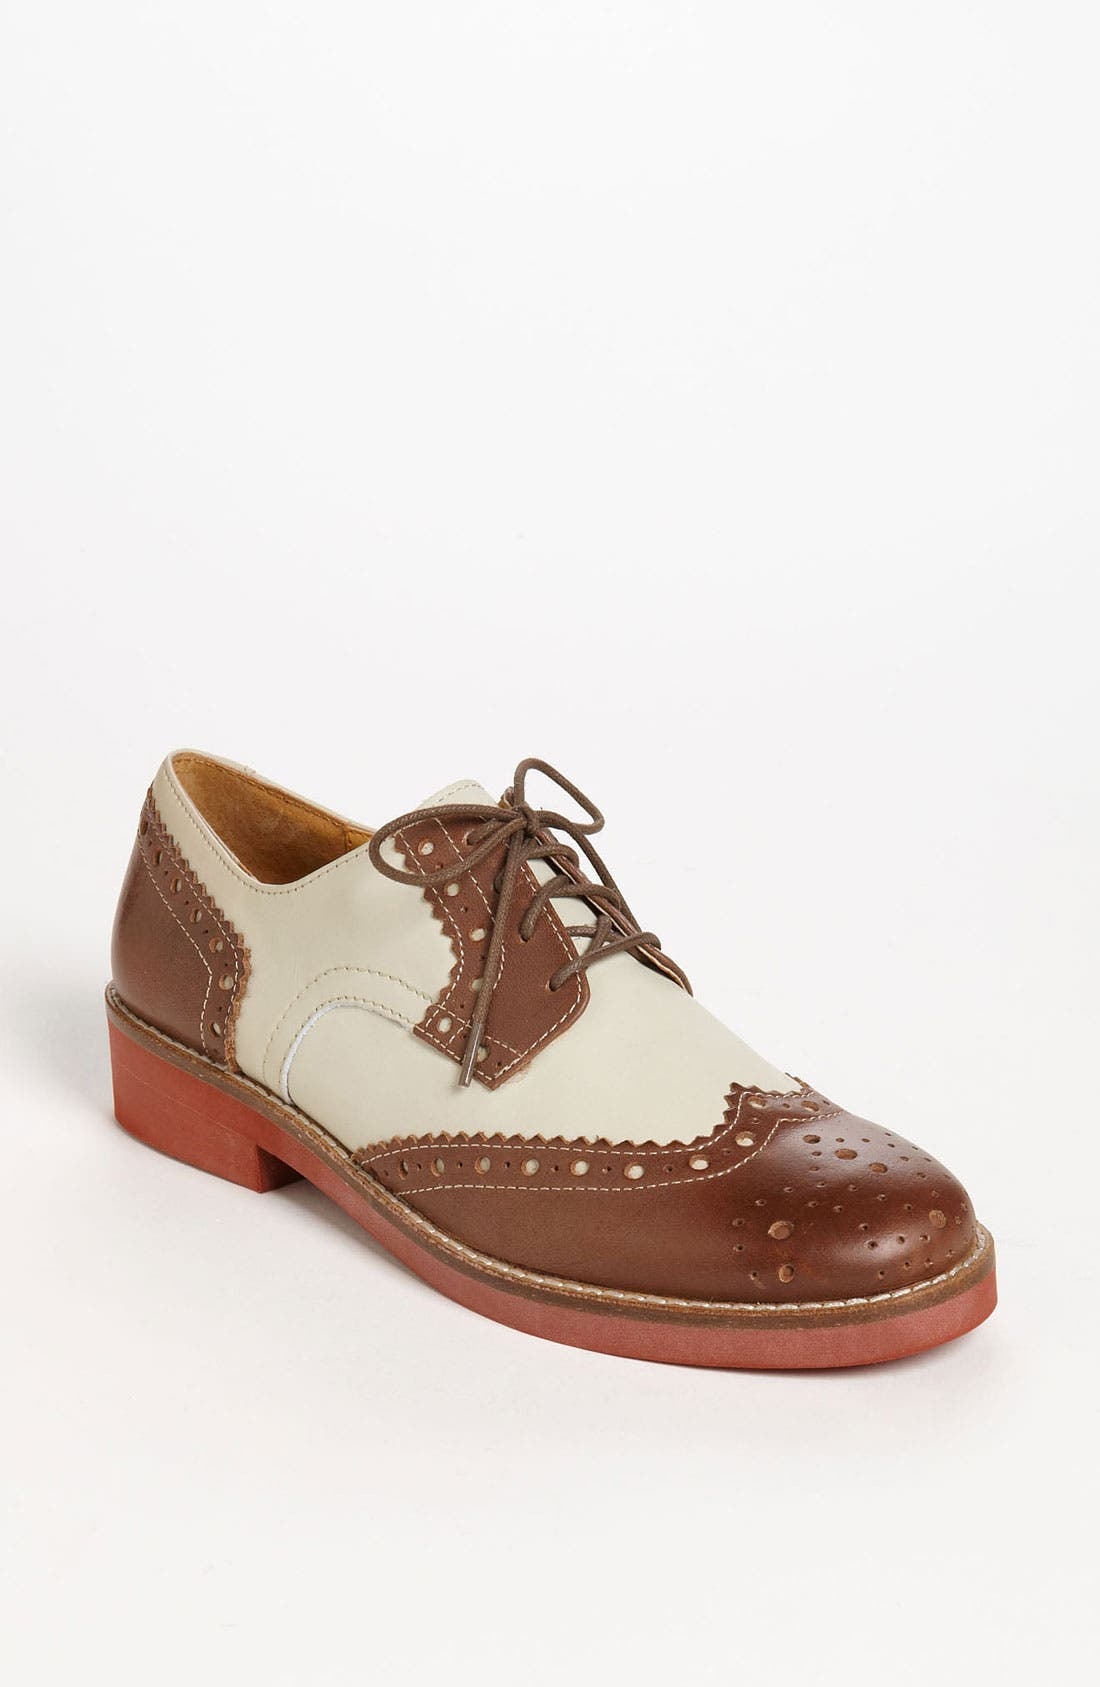 Main Image - Steven by Steve Madden 'Banx' Oxford